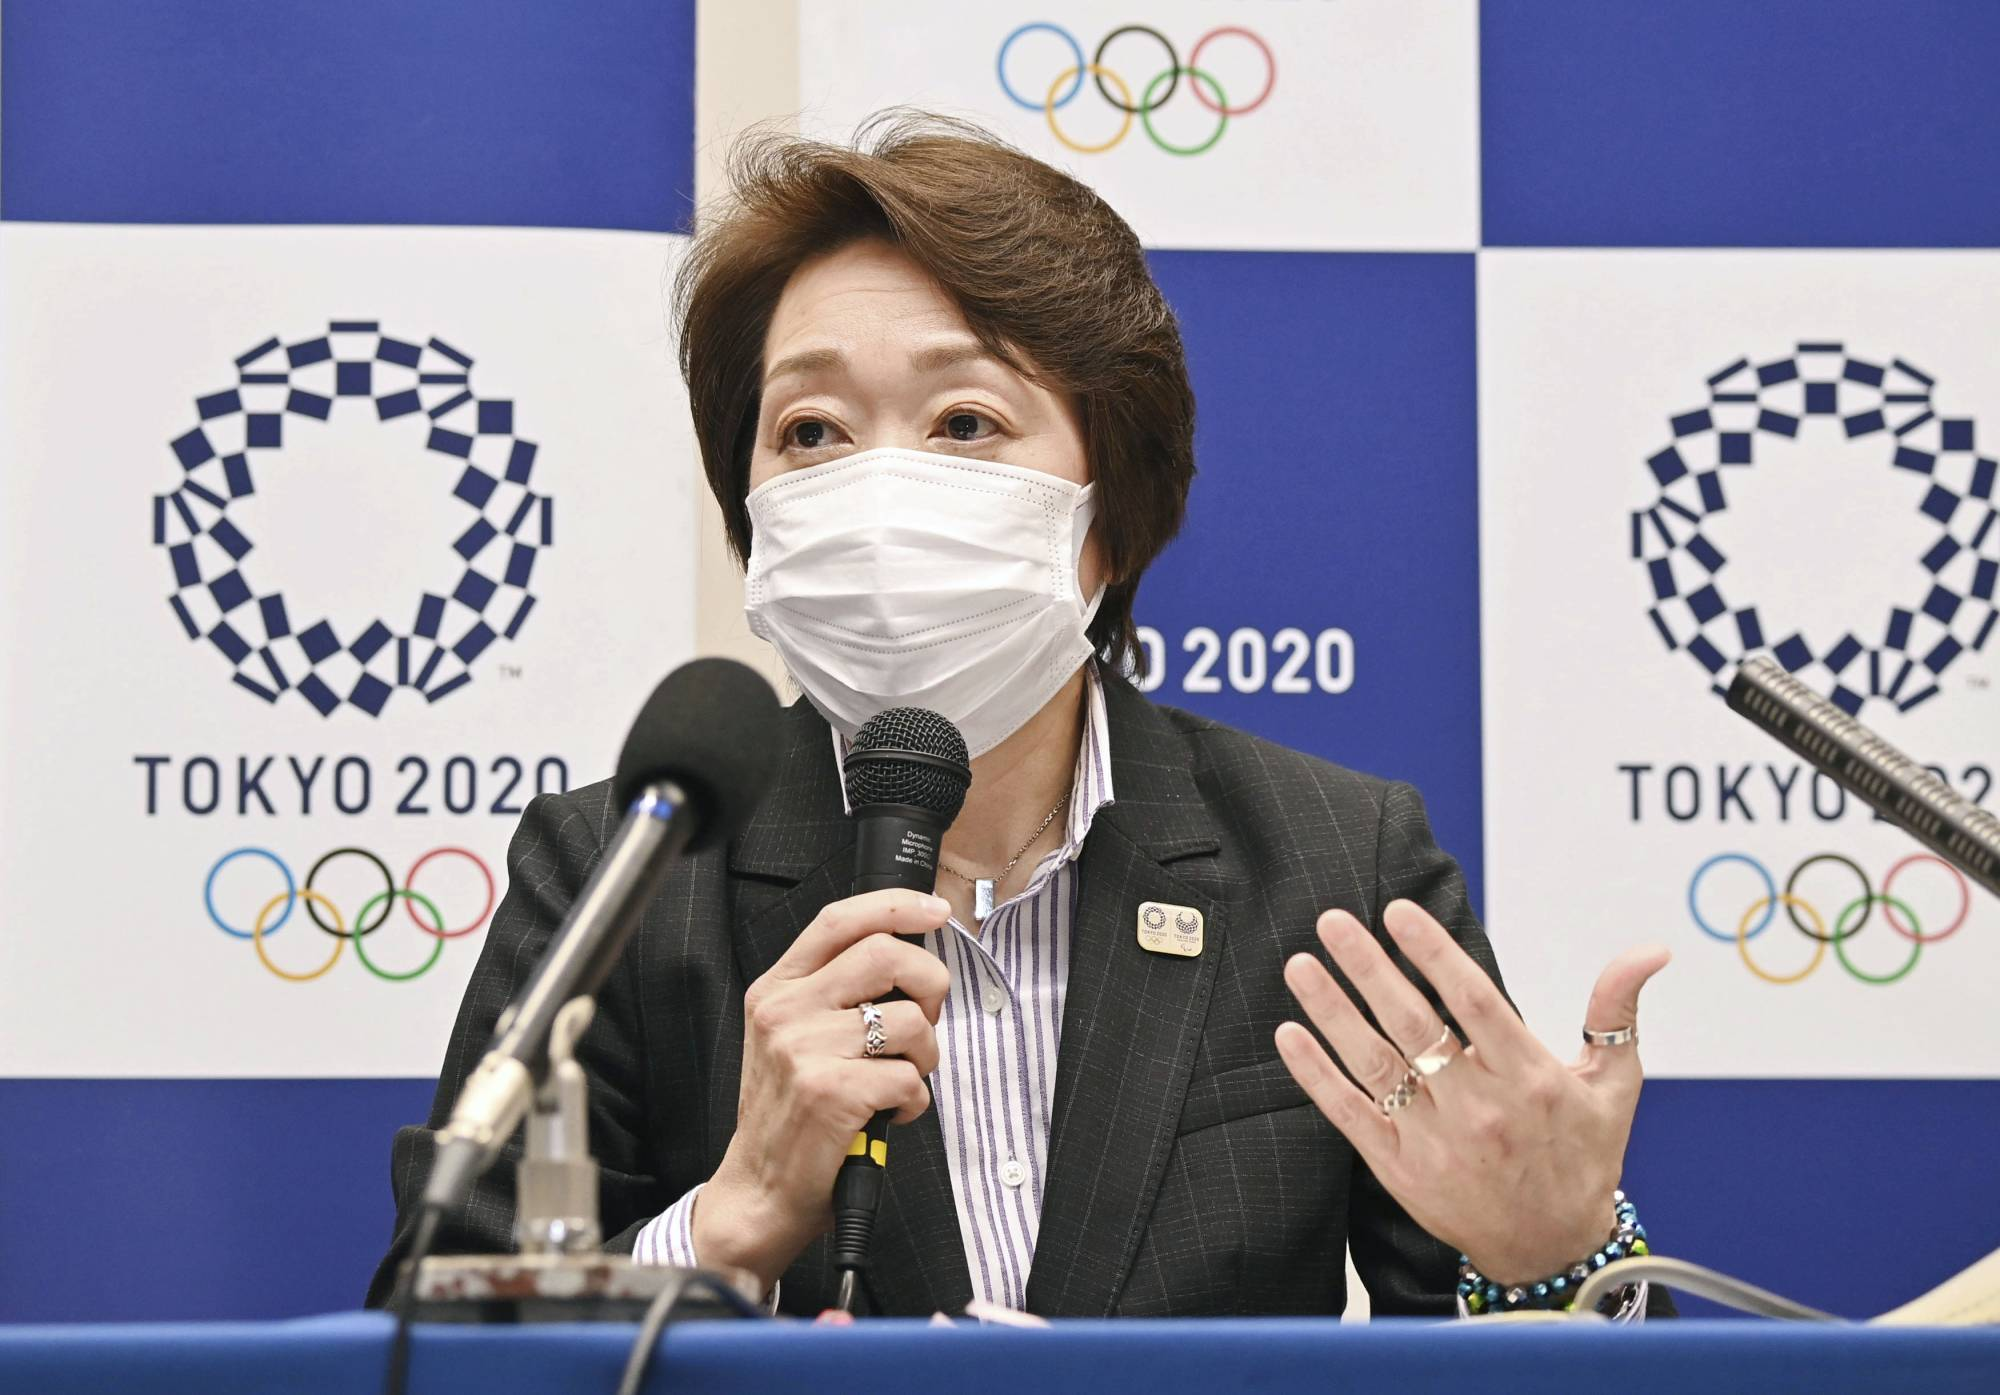 Tokyo 2020 Organising Committee head Seiko Hashimoto attends a news conference in Tokyo on Friday.   POOL / KYODO